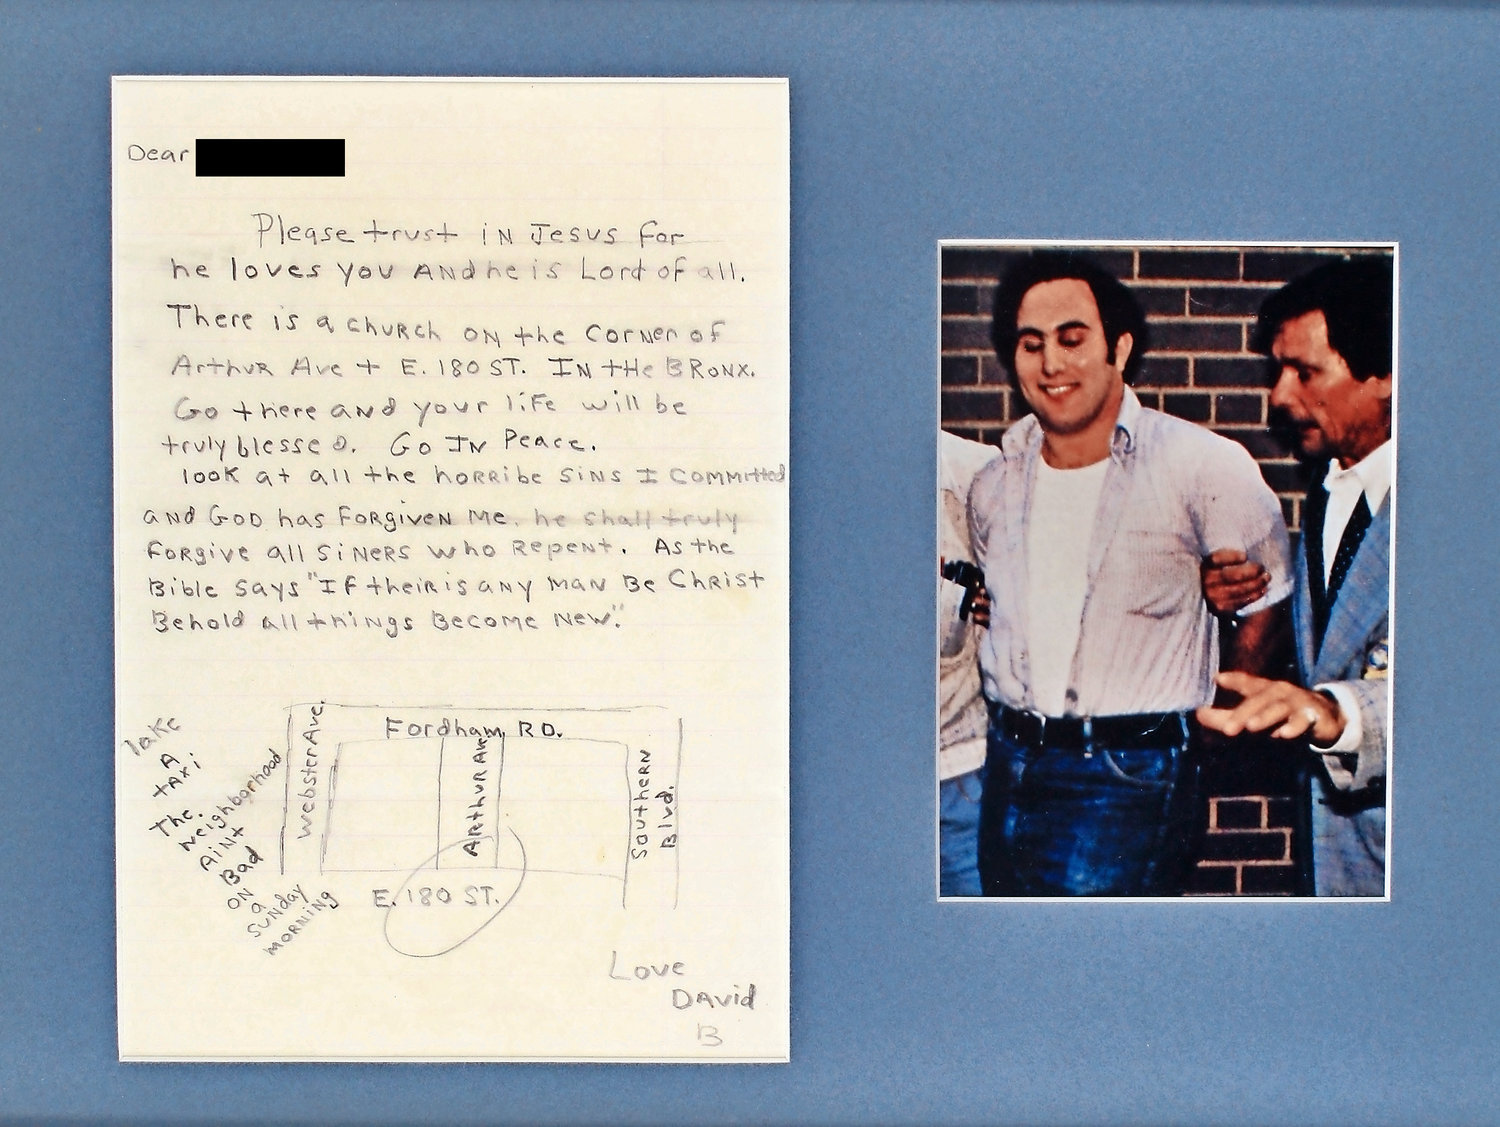 David Berkowitz, who was known as the Son of Sam, wrote a letter on God's forgiveness, above left, that included a map of a church in the Bronx.